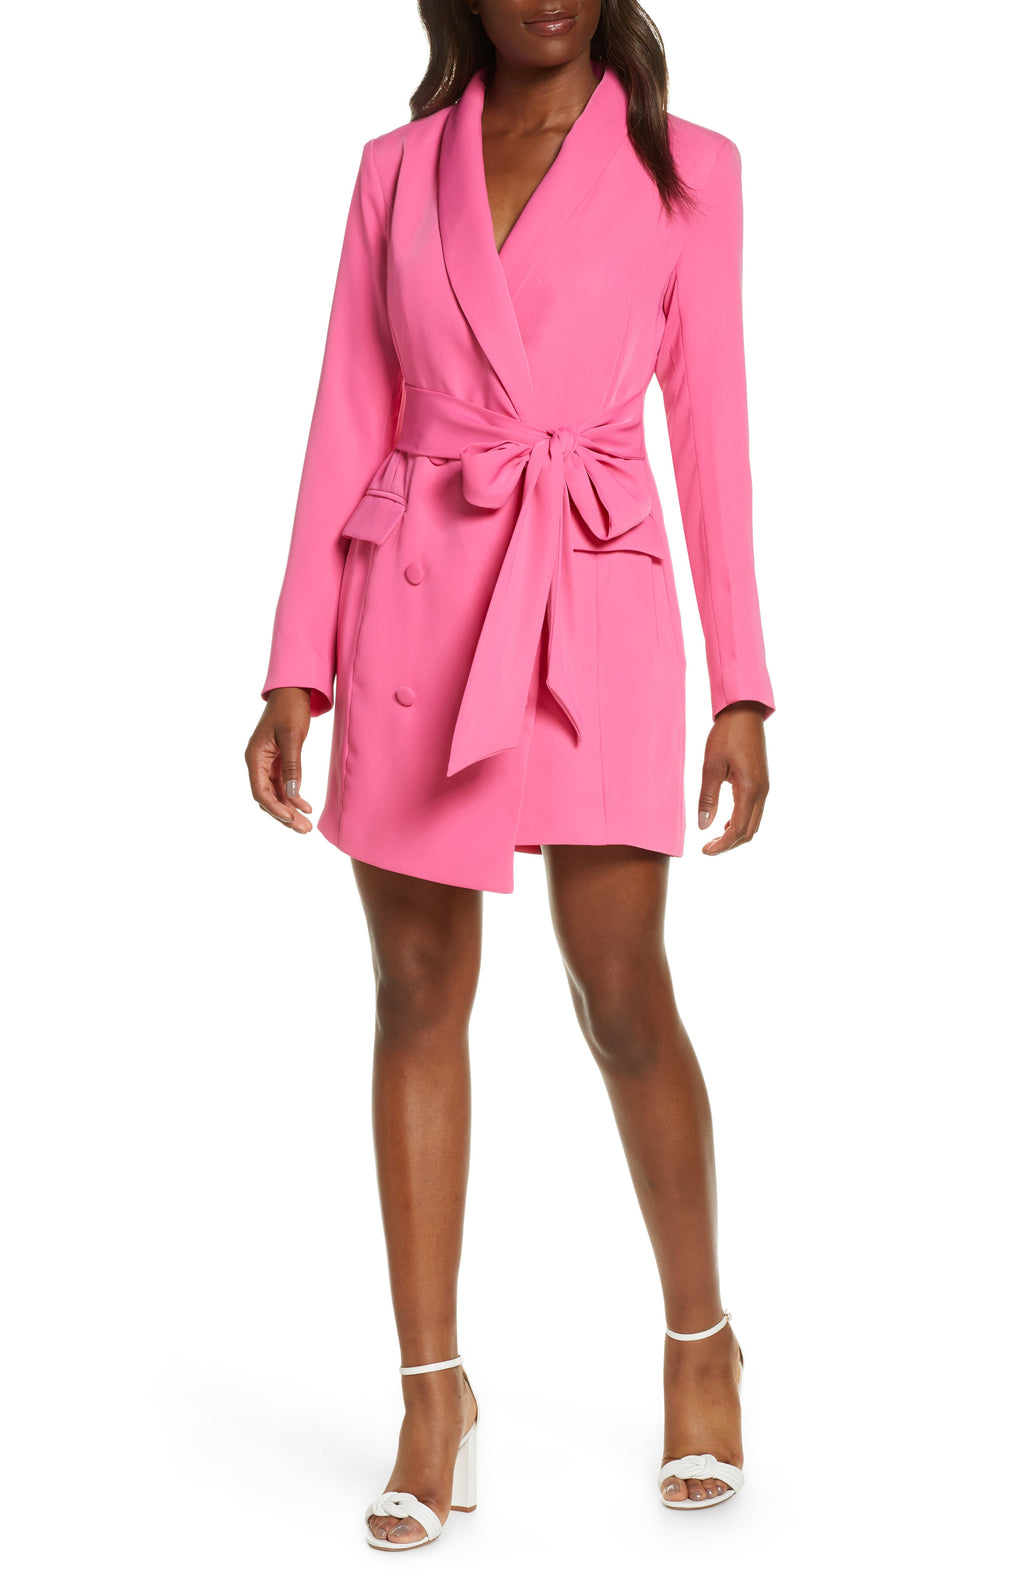 Ashtyn Jacket Dress in Pink